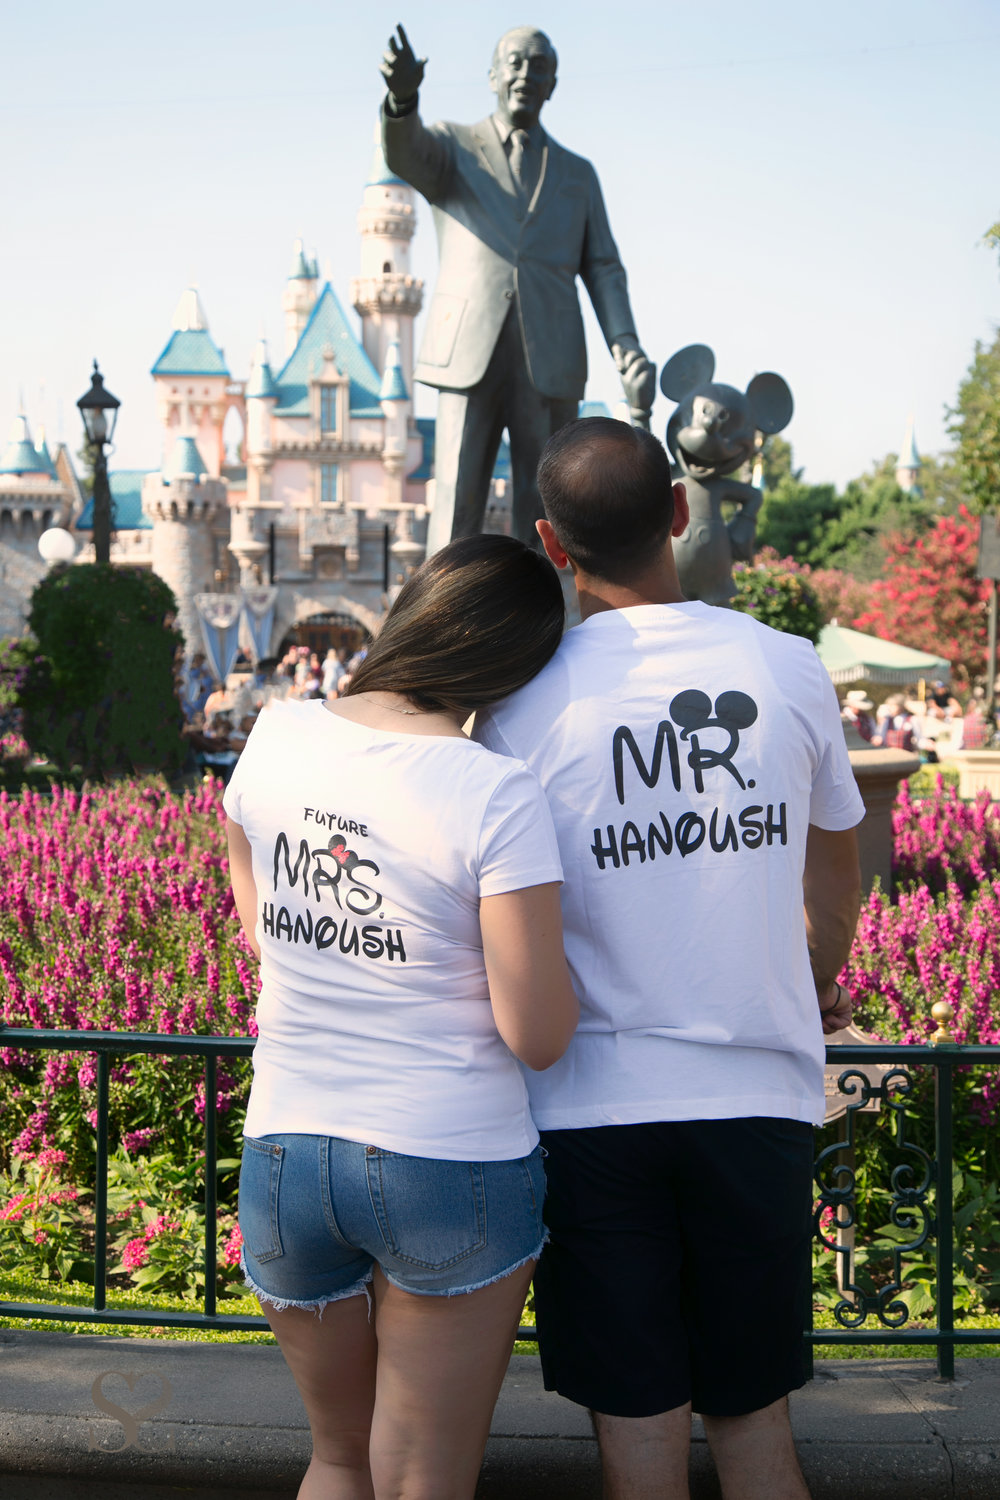 SARKISSTUDIOS-DISNEYLAND-PROPOSAL-9.JPG